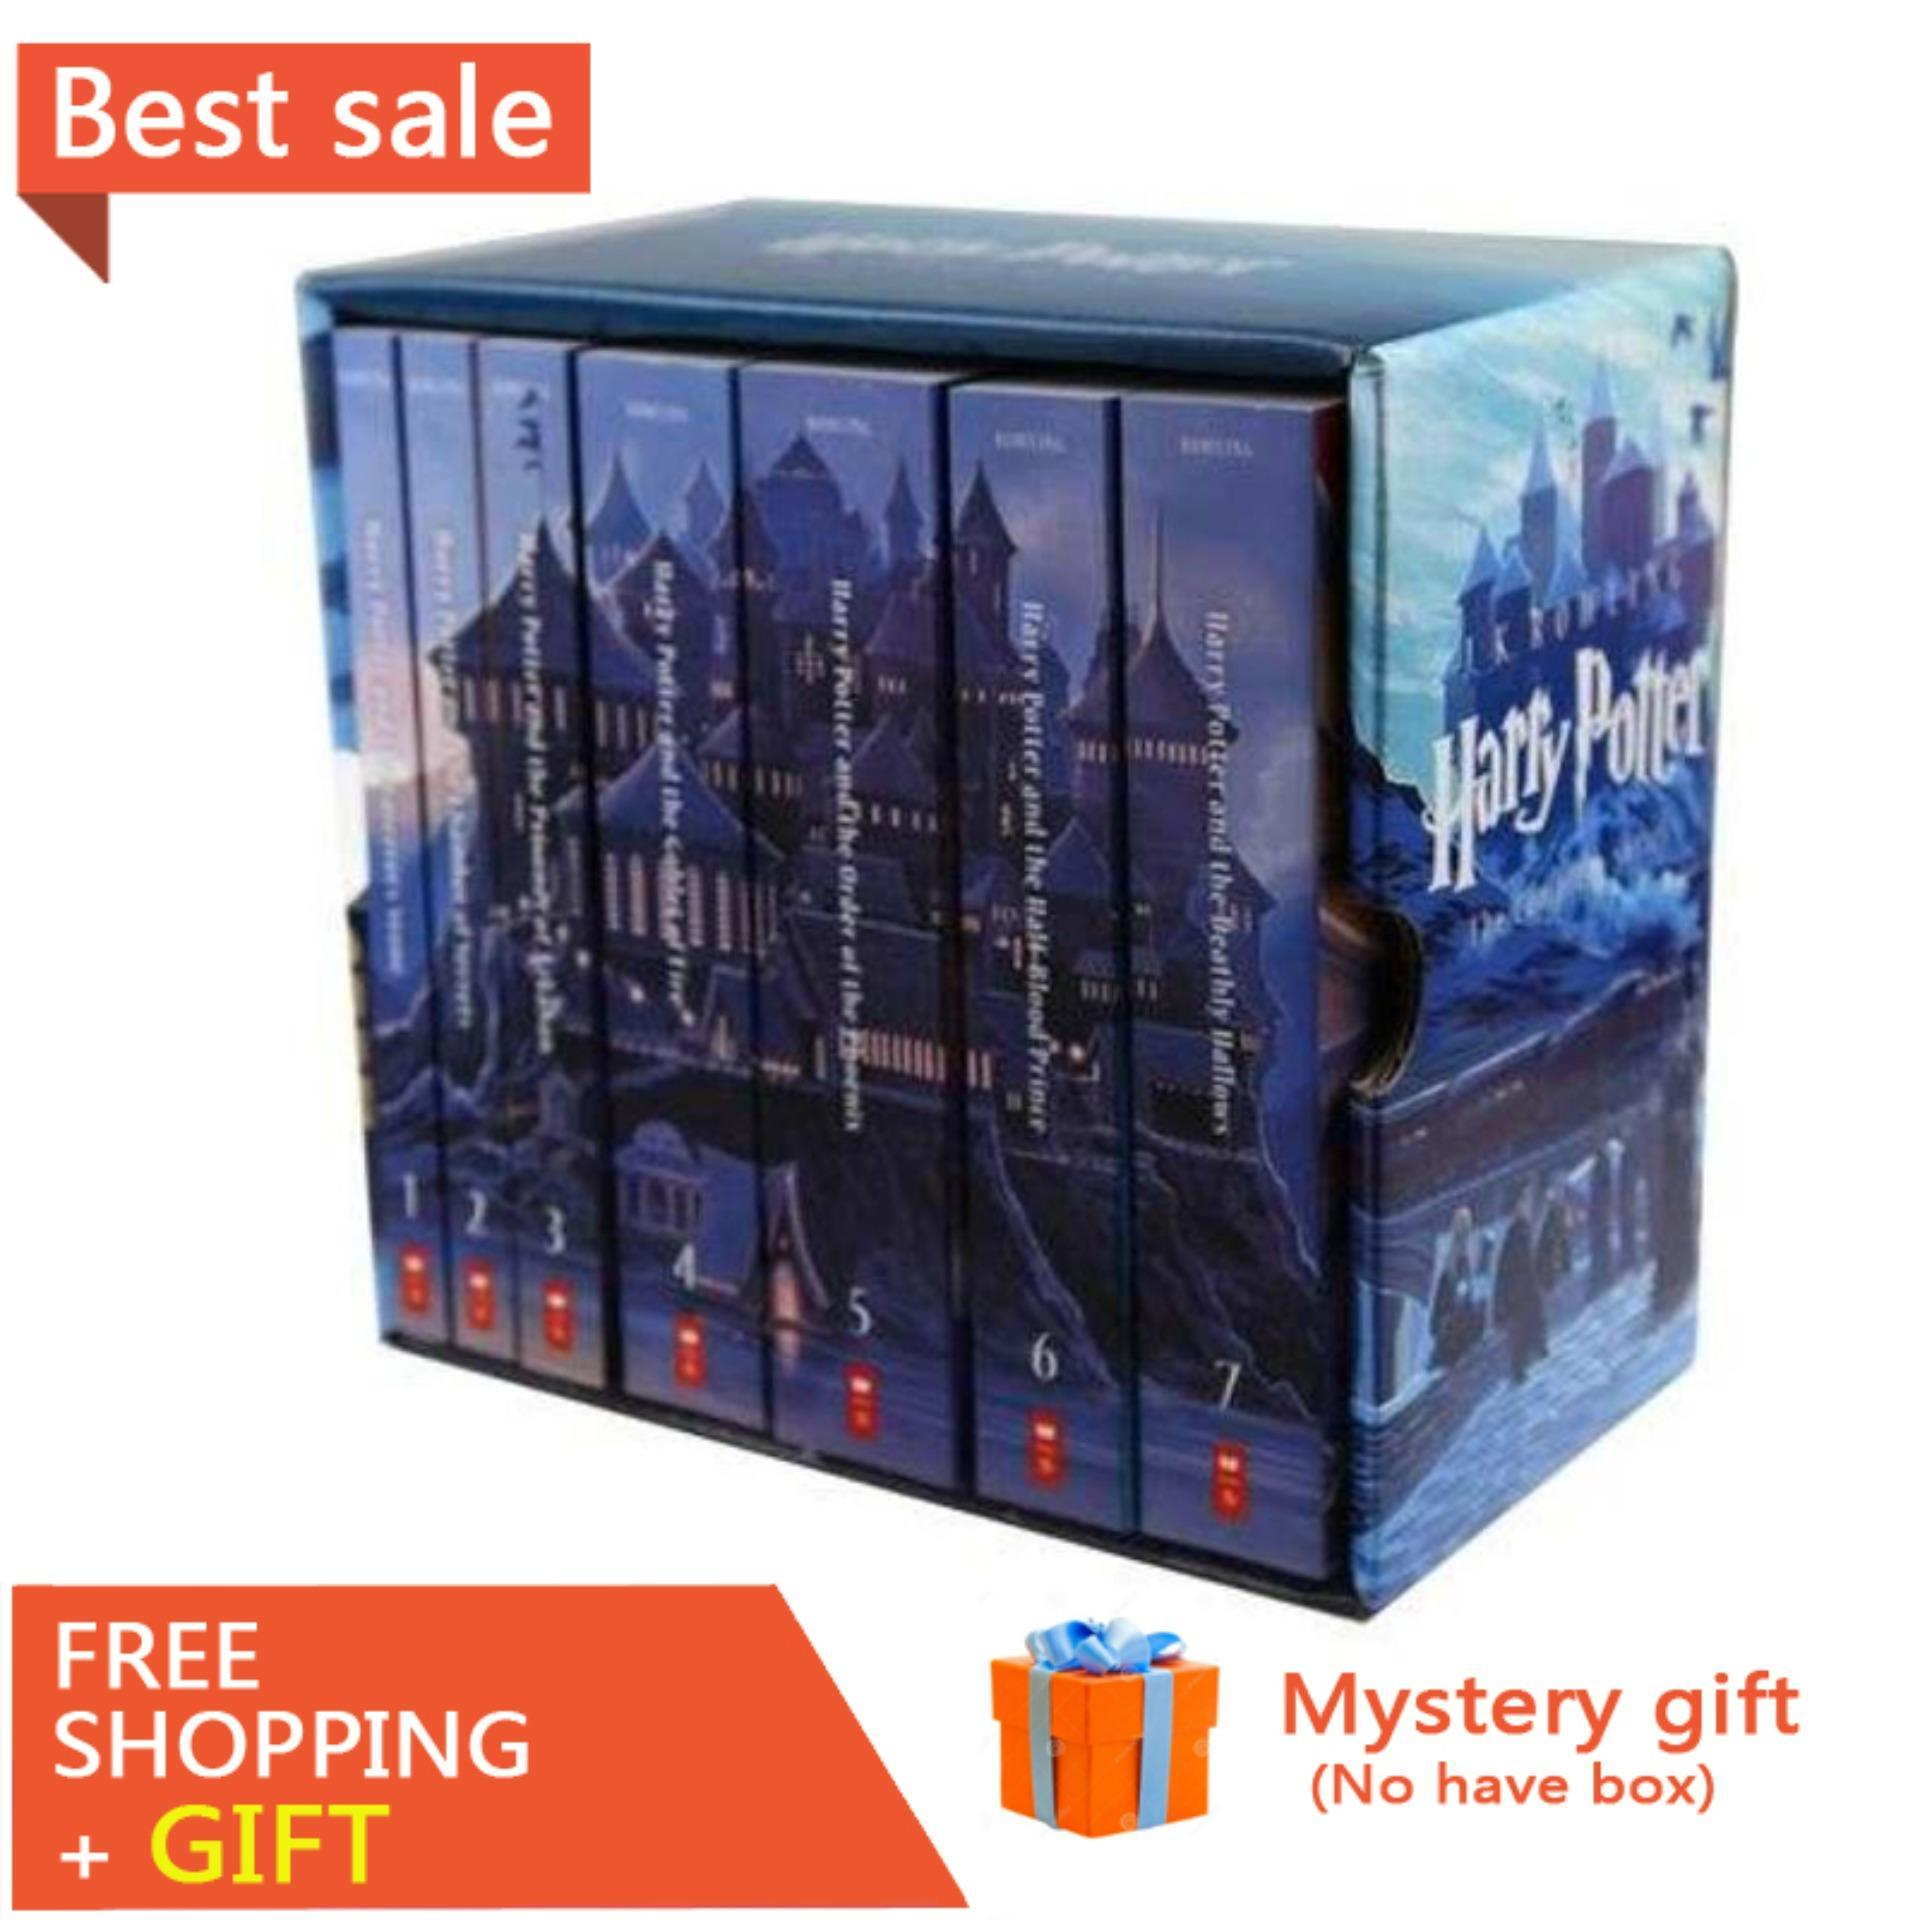 7 Books/ Set Harry Potter Books Adult Foreign Novels English Story Book for Kids Spell Book English Reading Books for Kids Children Gifts